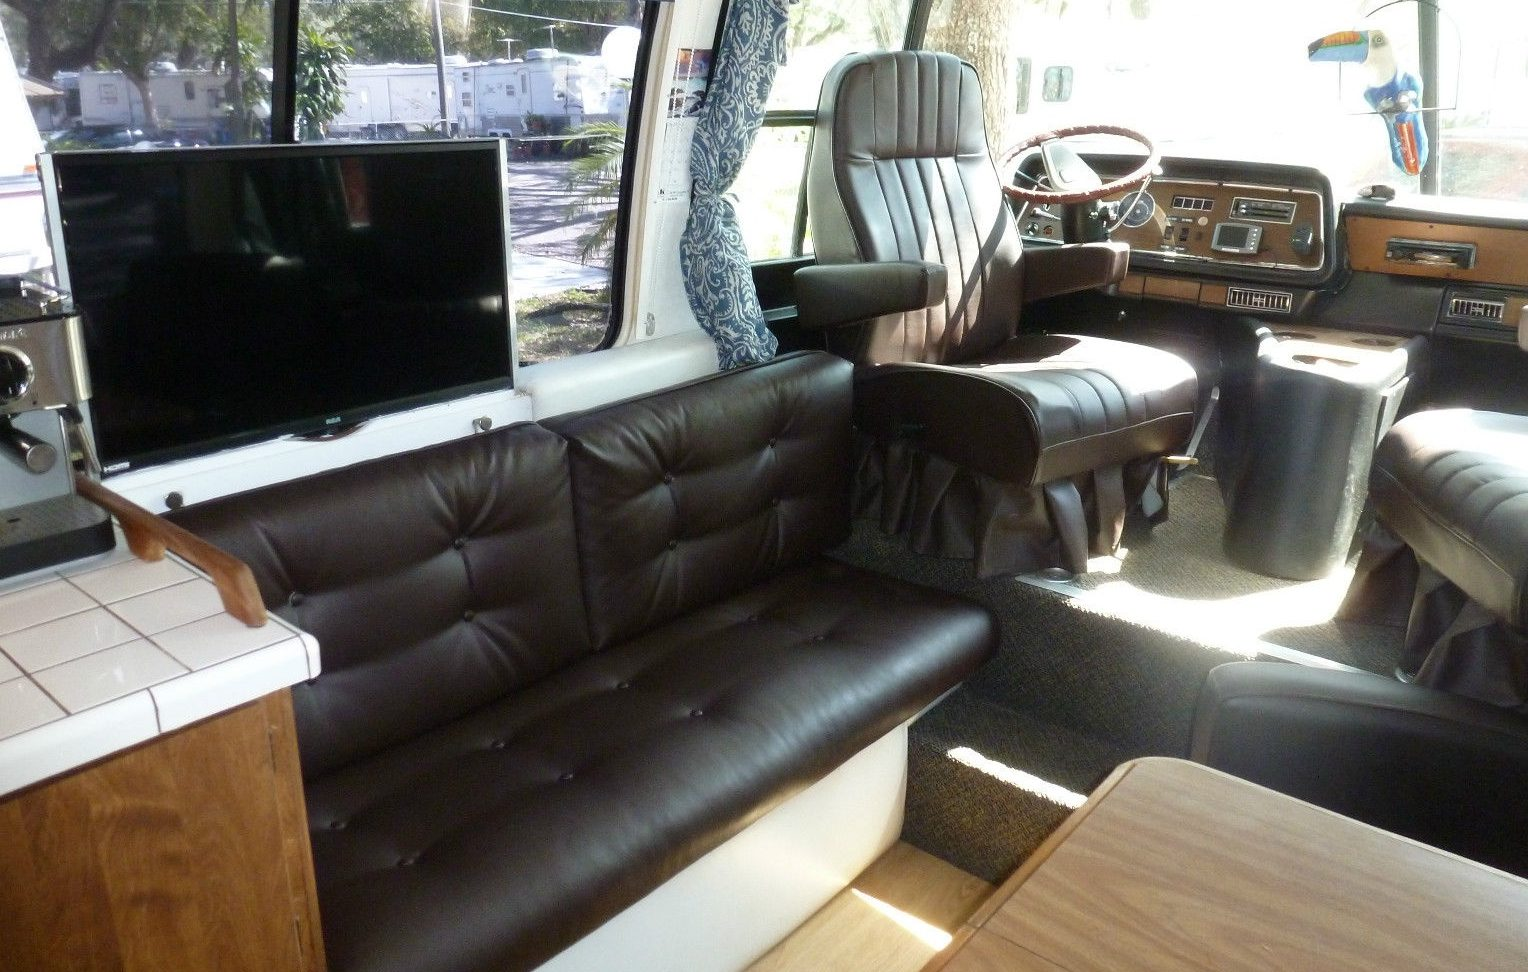 ... My Opinion, Is The Interior. So Many Of These Things Are Downright  Deplorable Inside. The Seller Has Clearly Taken The Time To Make This GMC  Motorhome ...